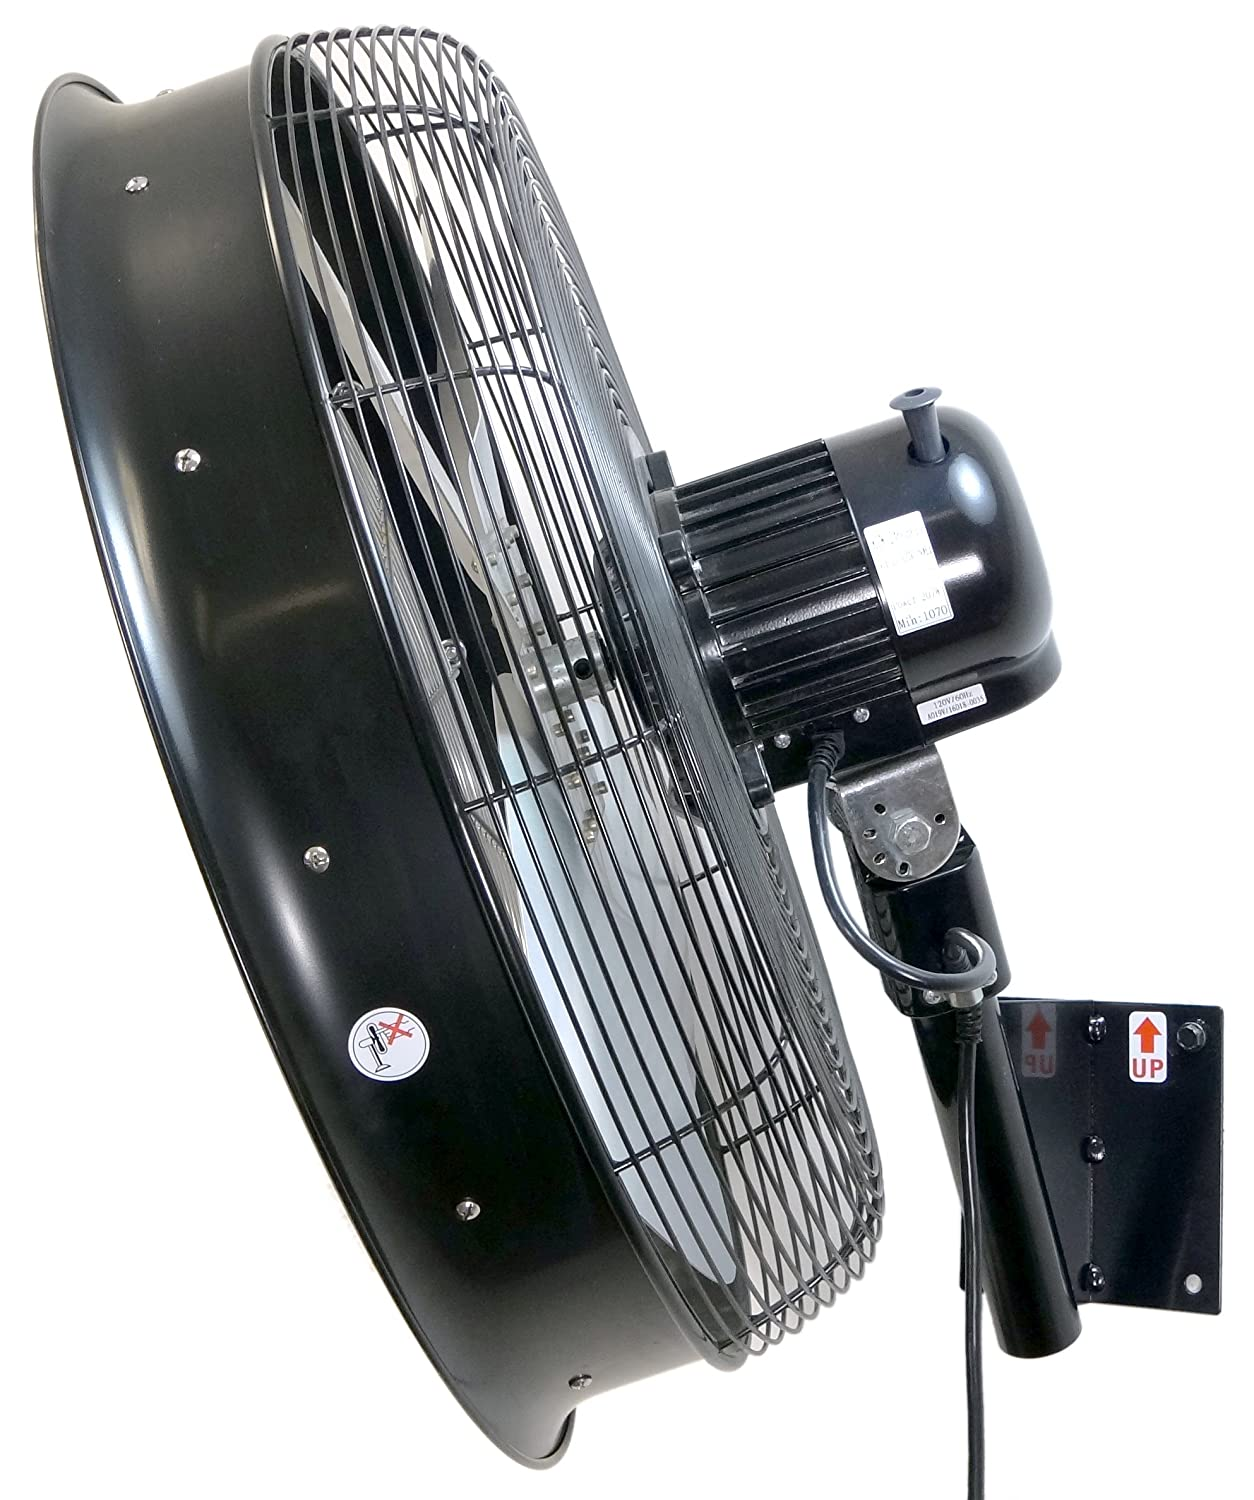 White 3 Speed On Cord HydroMist F10-14-012 18 Shrouded Outdoor Wall Mount Oscillating Fan 1.05 Amps 0.15 HP